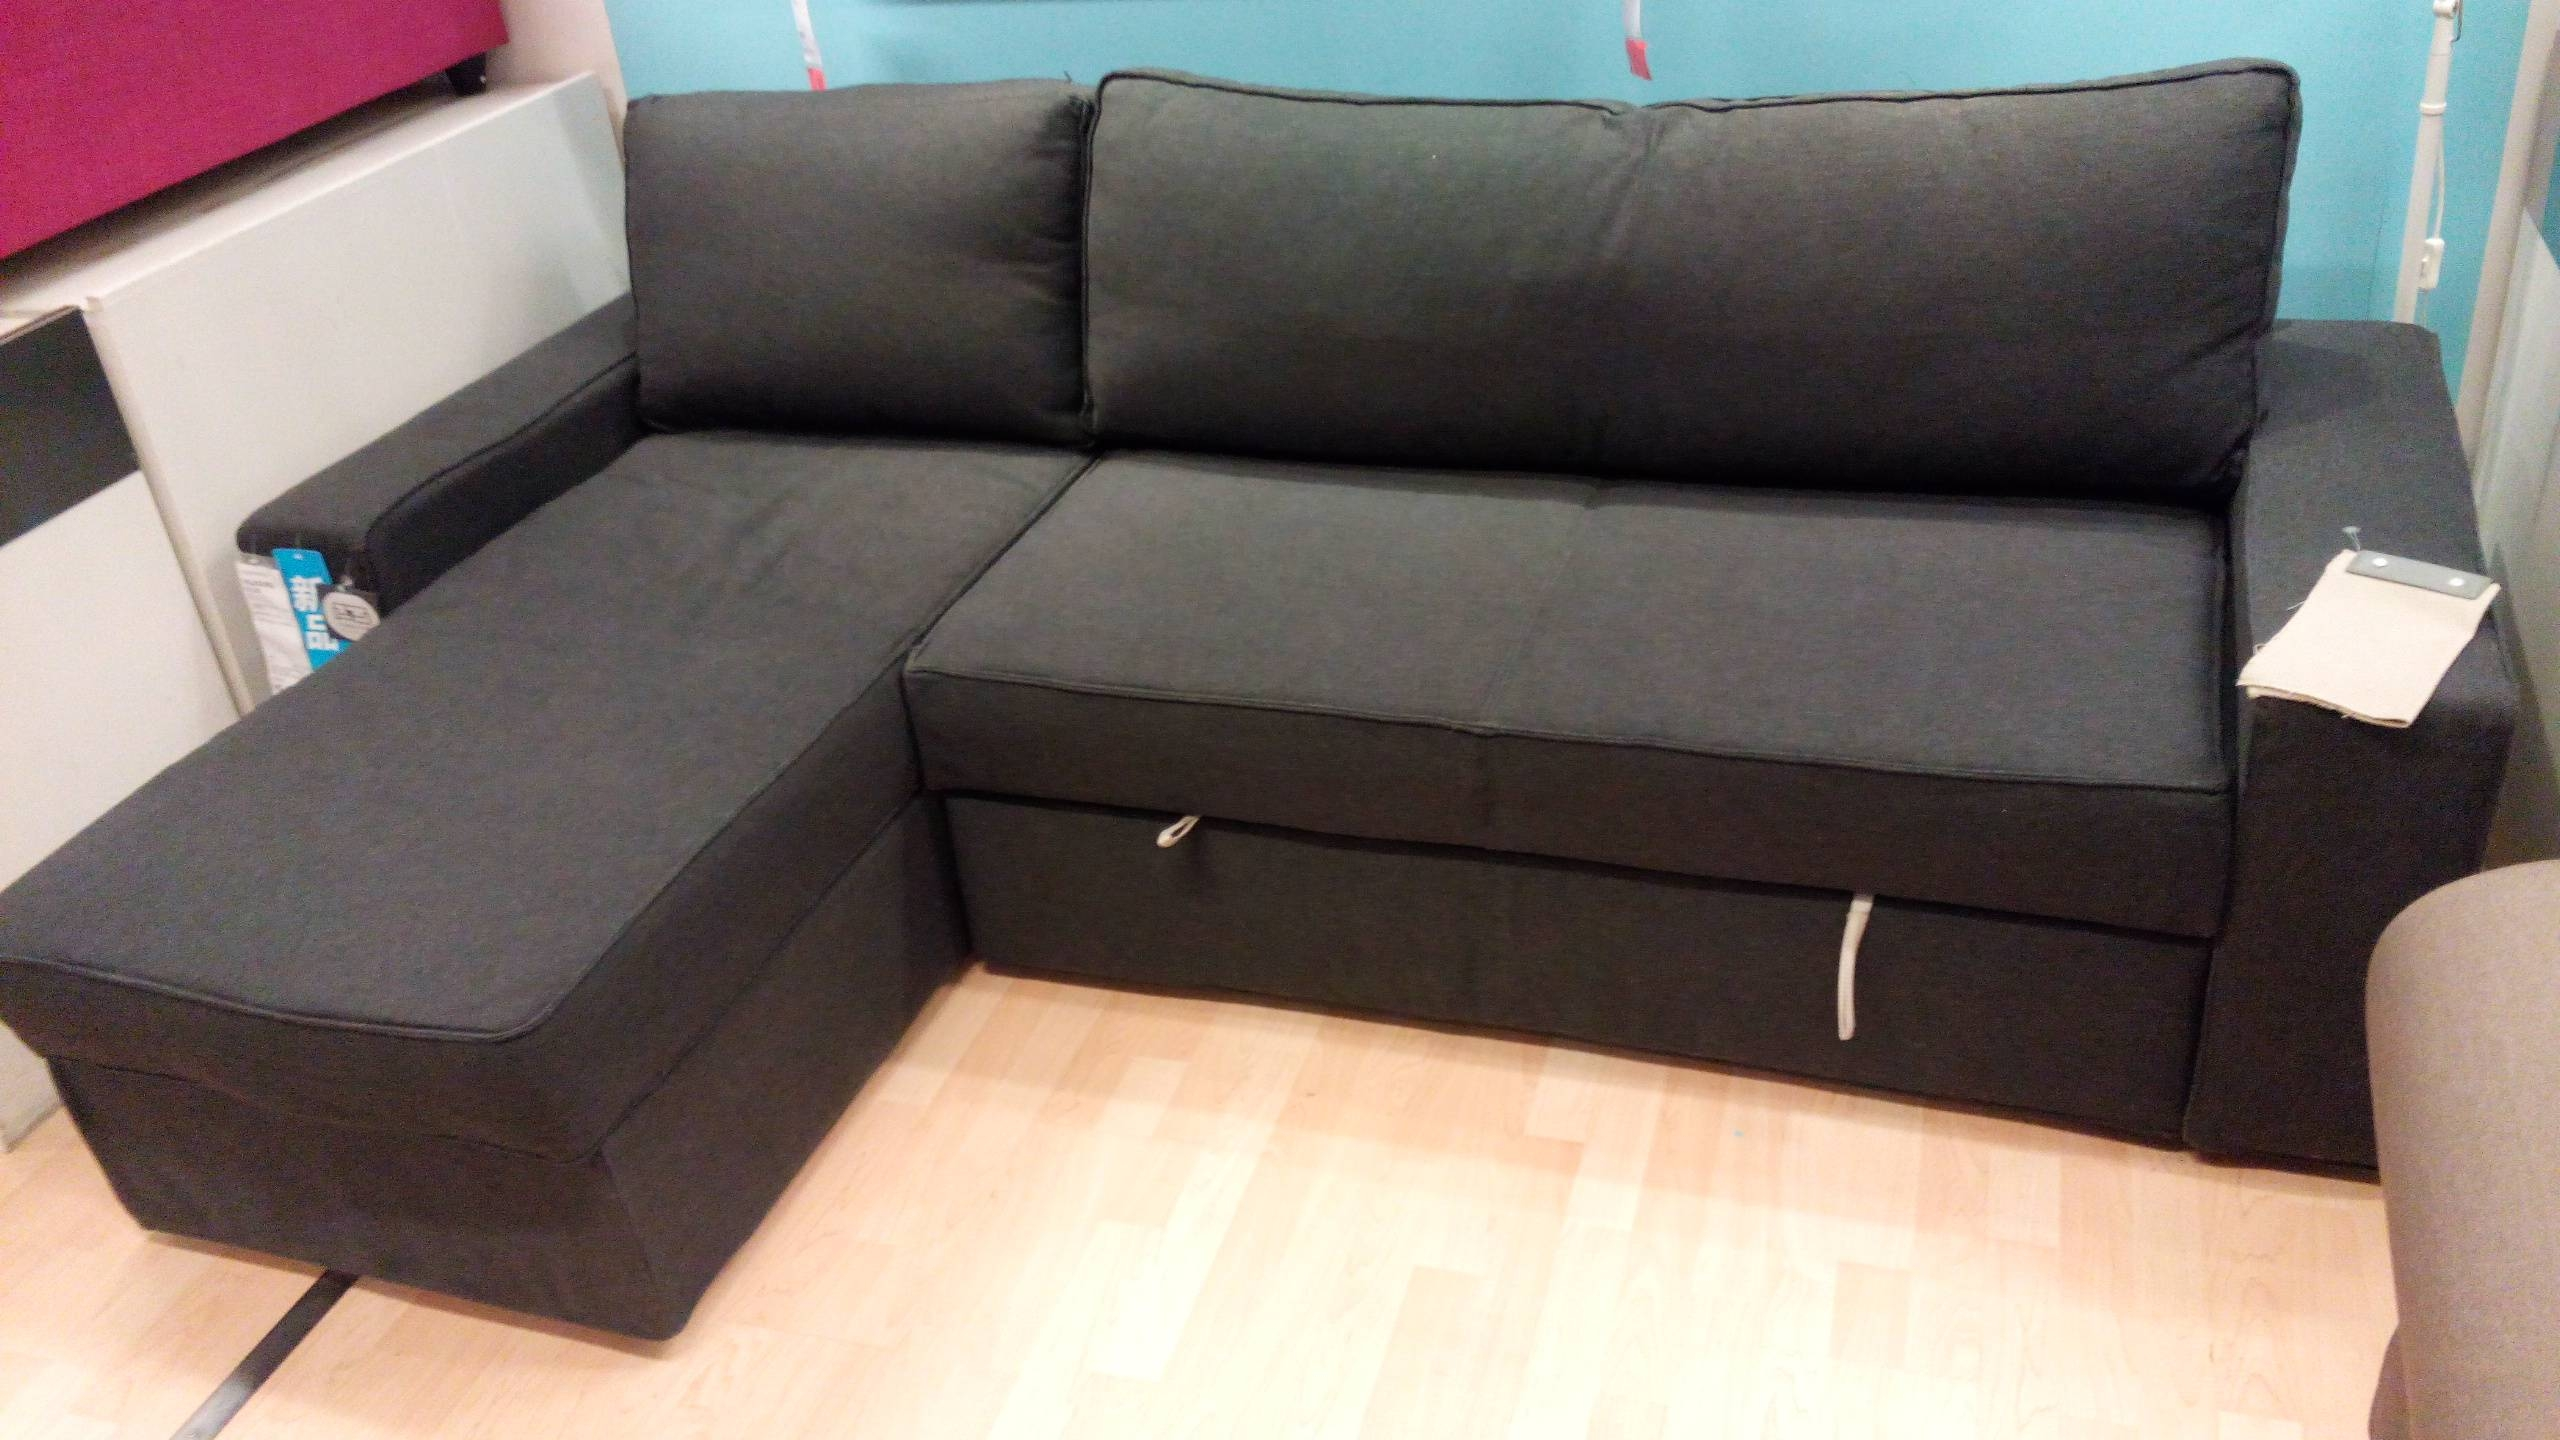 Fresh Manstad Sectional Sofa Bed Storage From Ikea 42 For Your Throughout  Manstad Sofa Bed Ikea